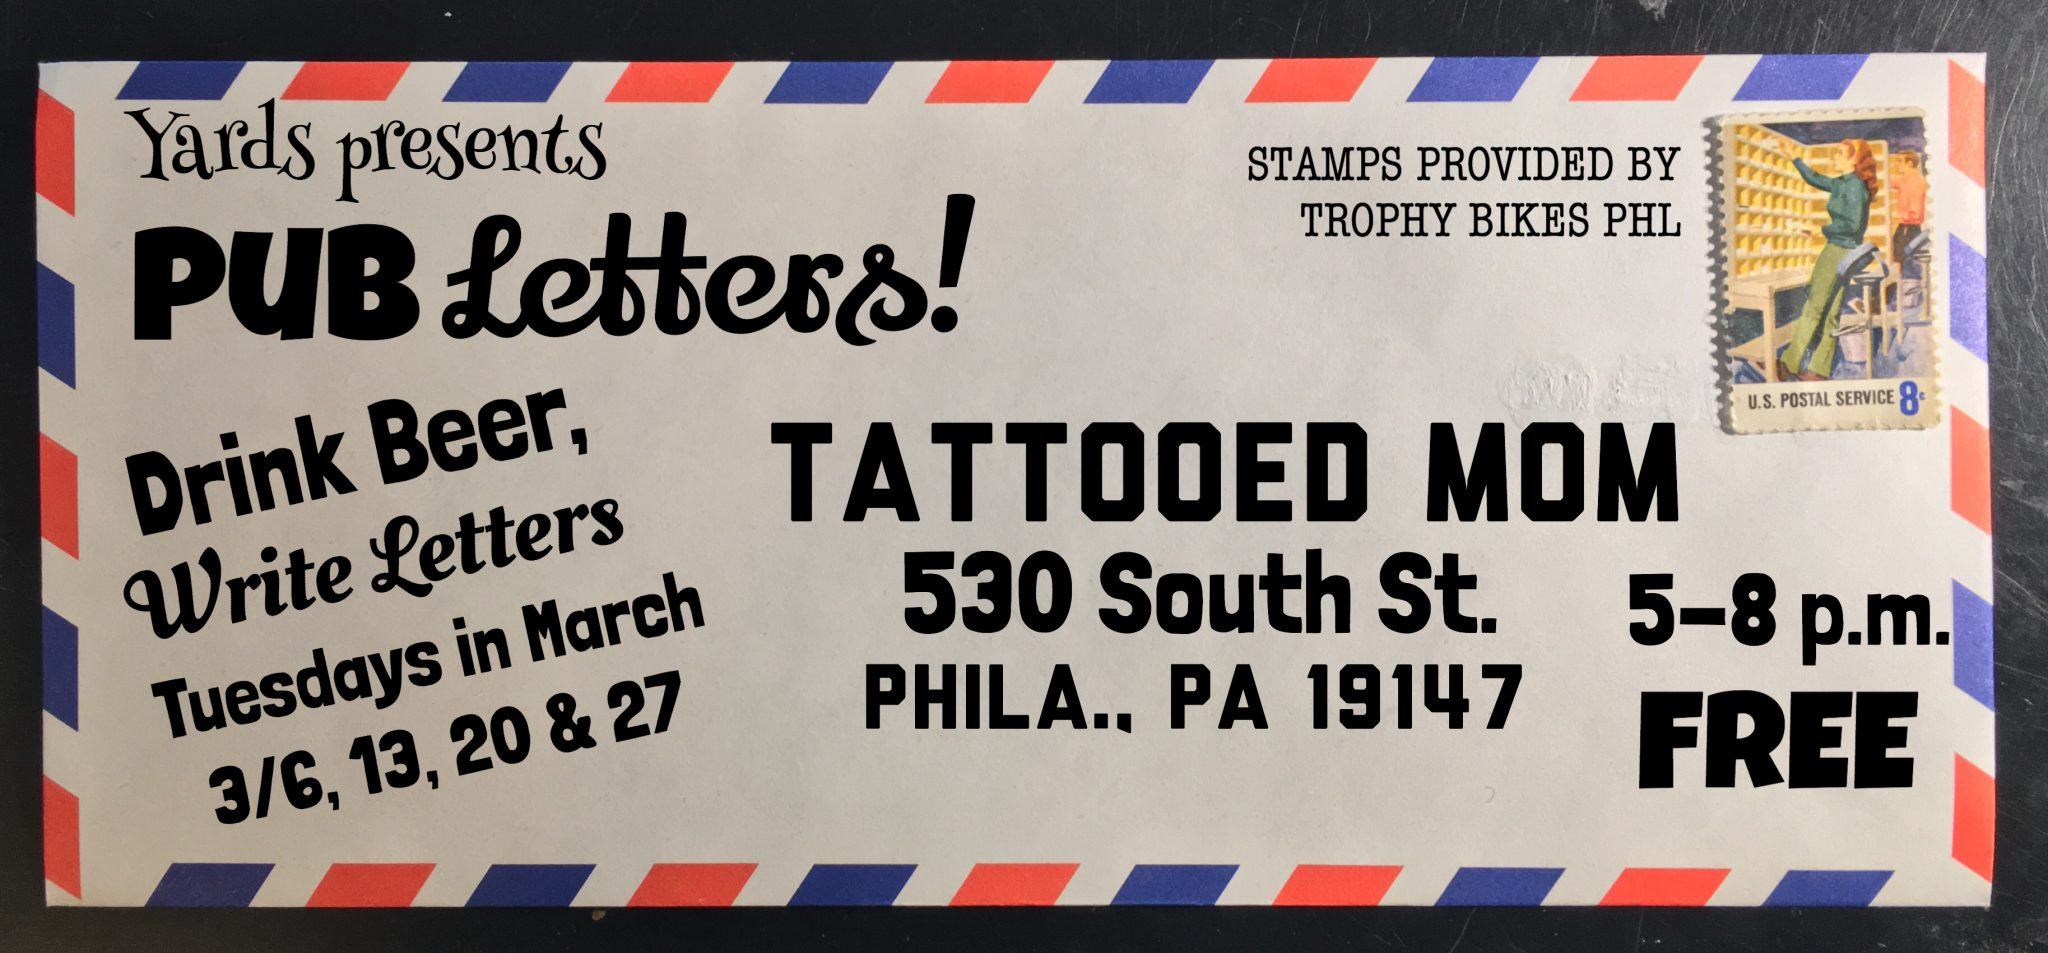 Publetters: Letter Writing Station - Tattooed Mom